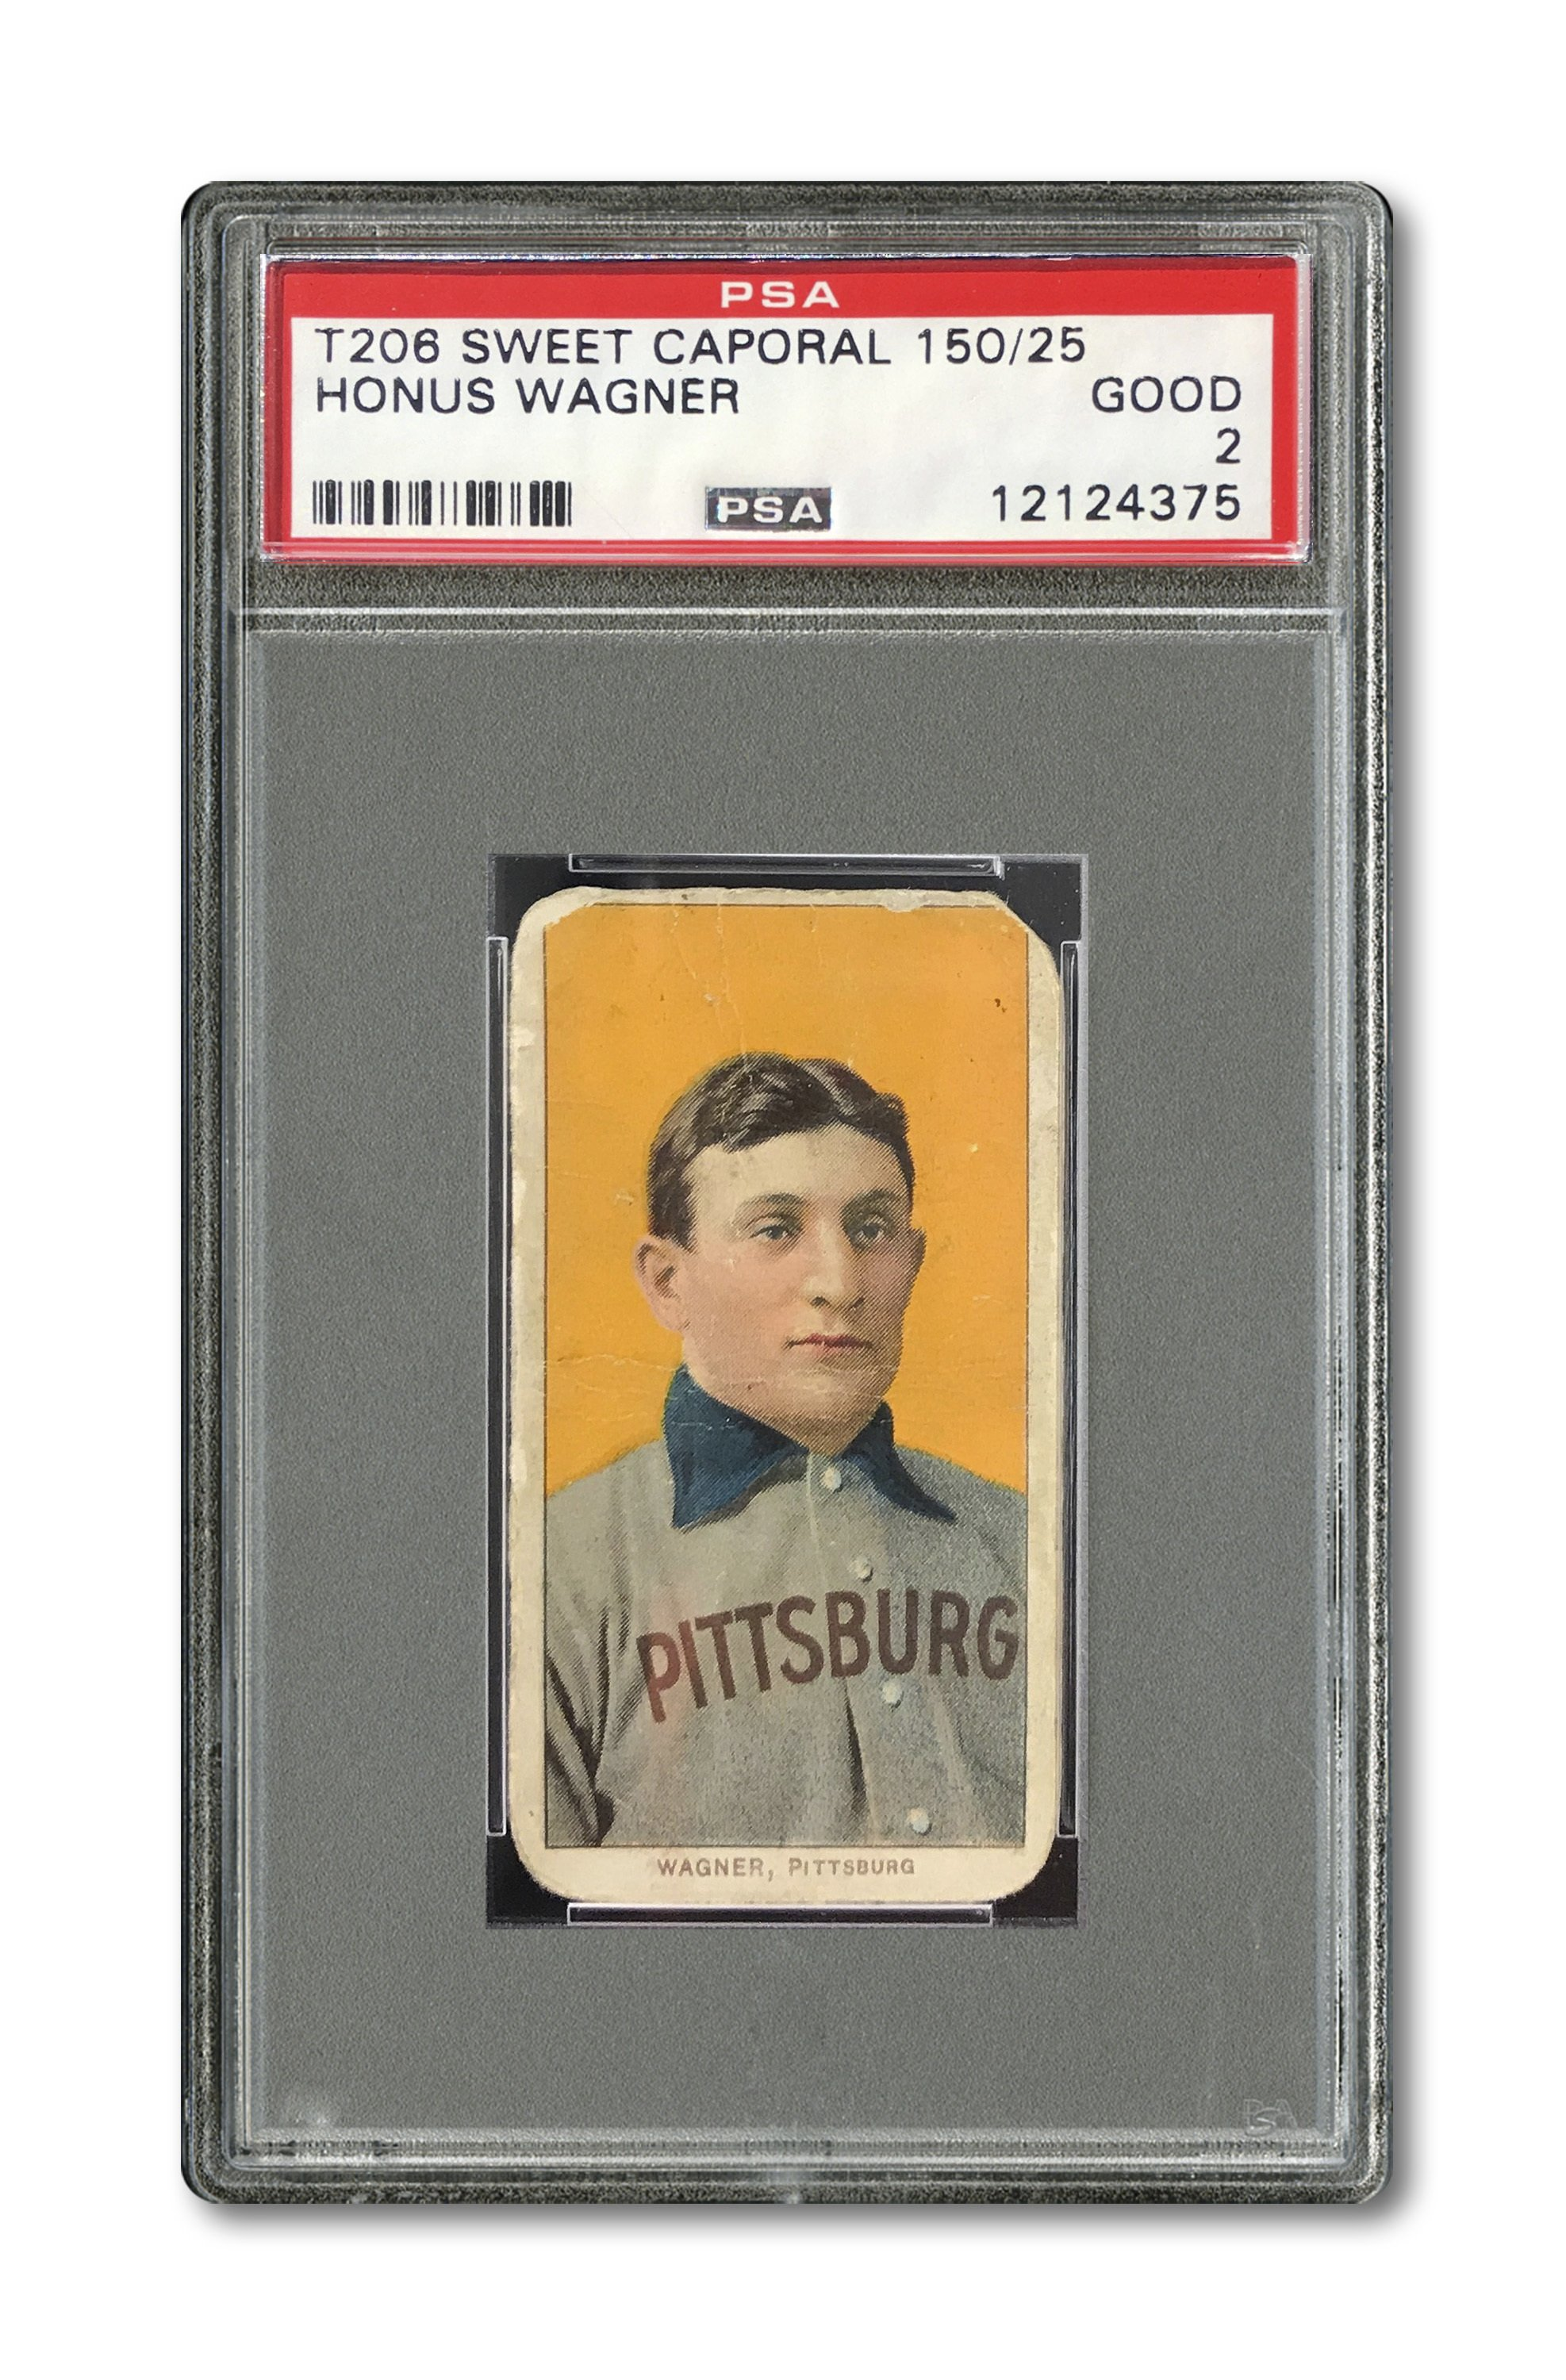 Honus Wagner Baseball Card Sells Privately For 12 Million